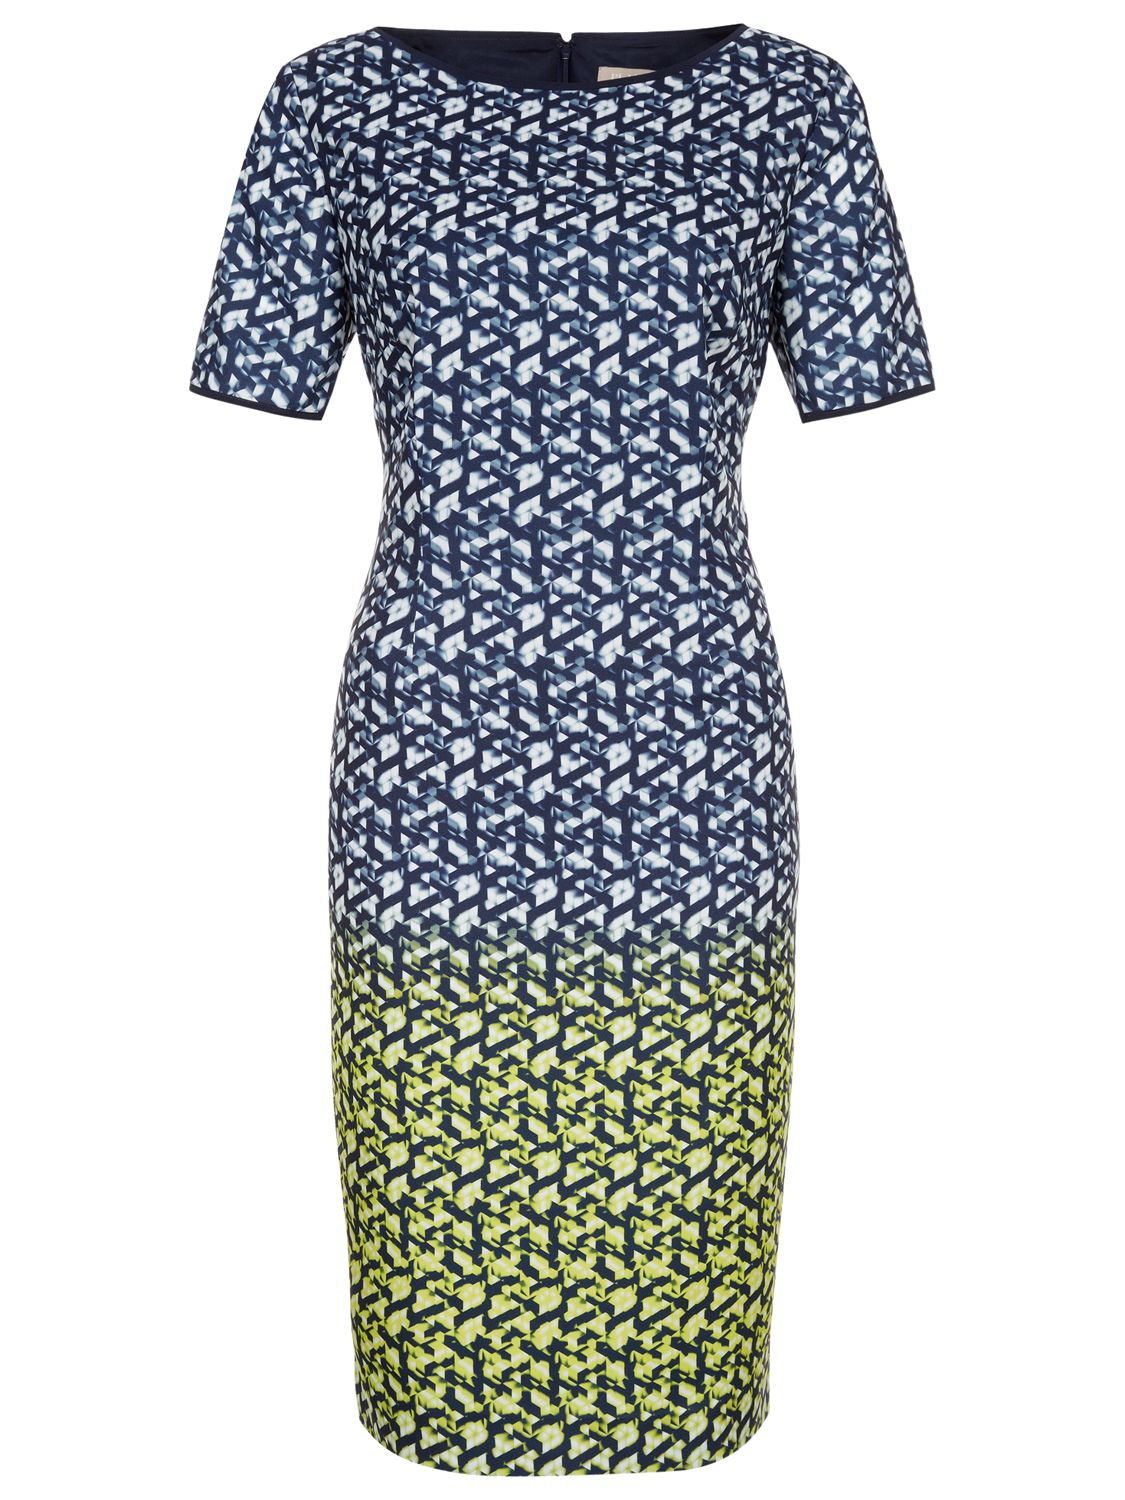 planet ombre print dress, planet, ombre, print, dress, blue, clearance, womenswear offers, womens dresses offers, women, plus size, inactive womenswear, new reductions, womens dresses, special offers, 1559058